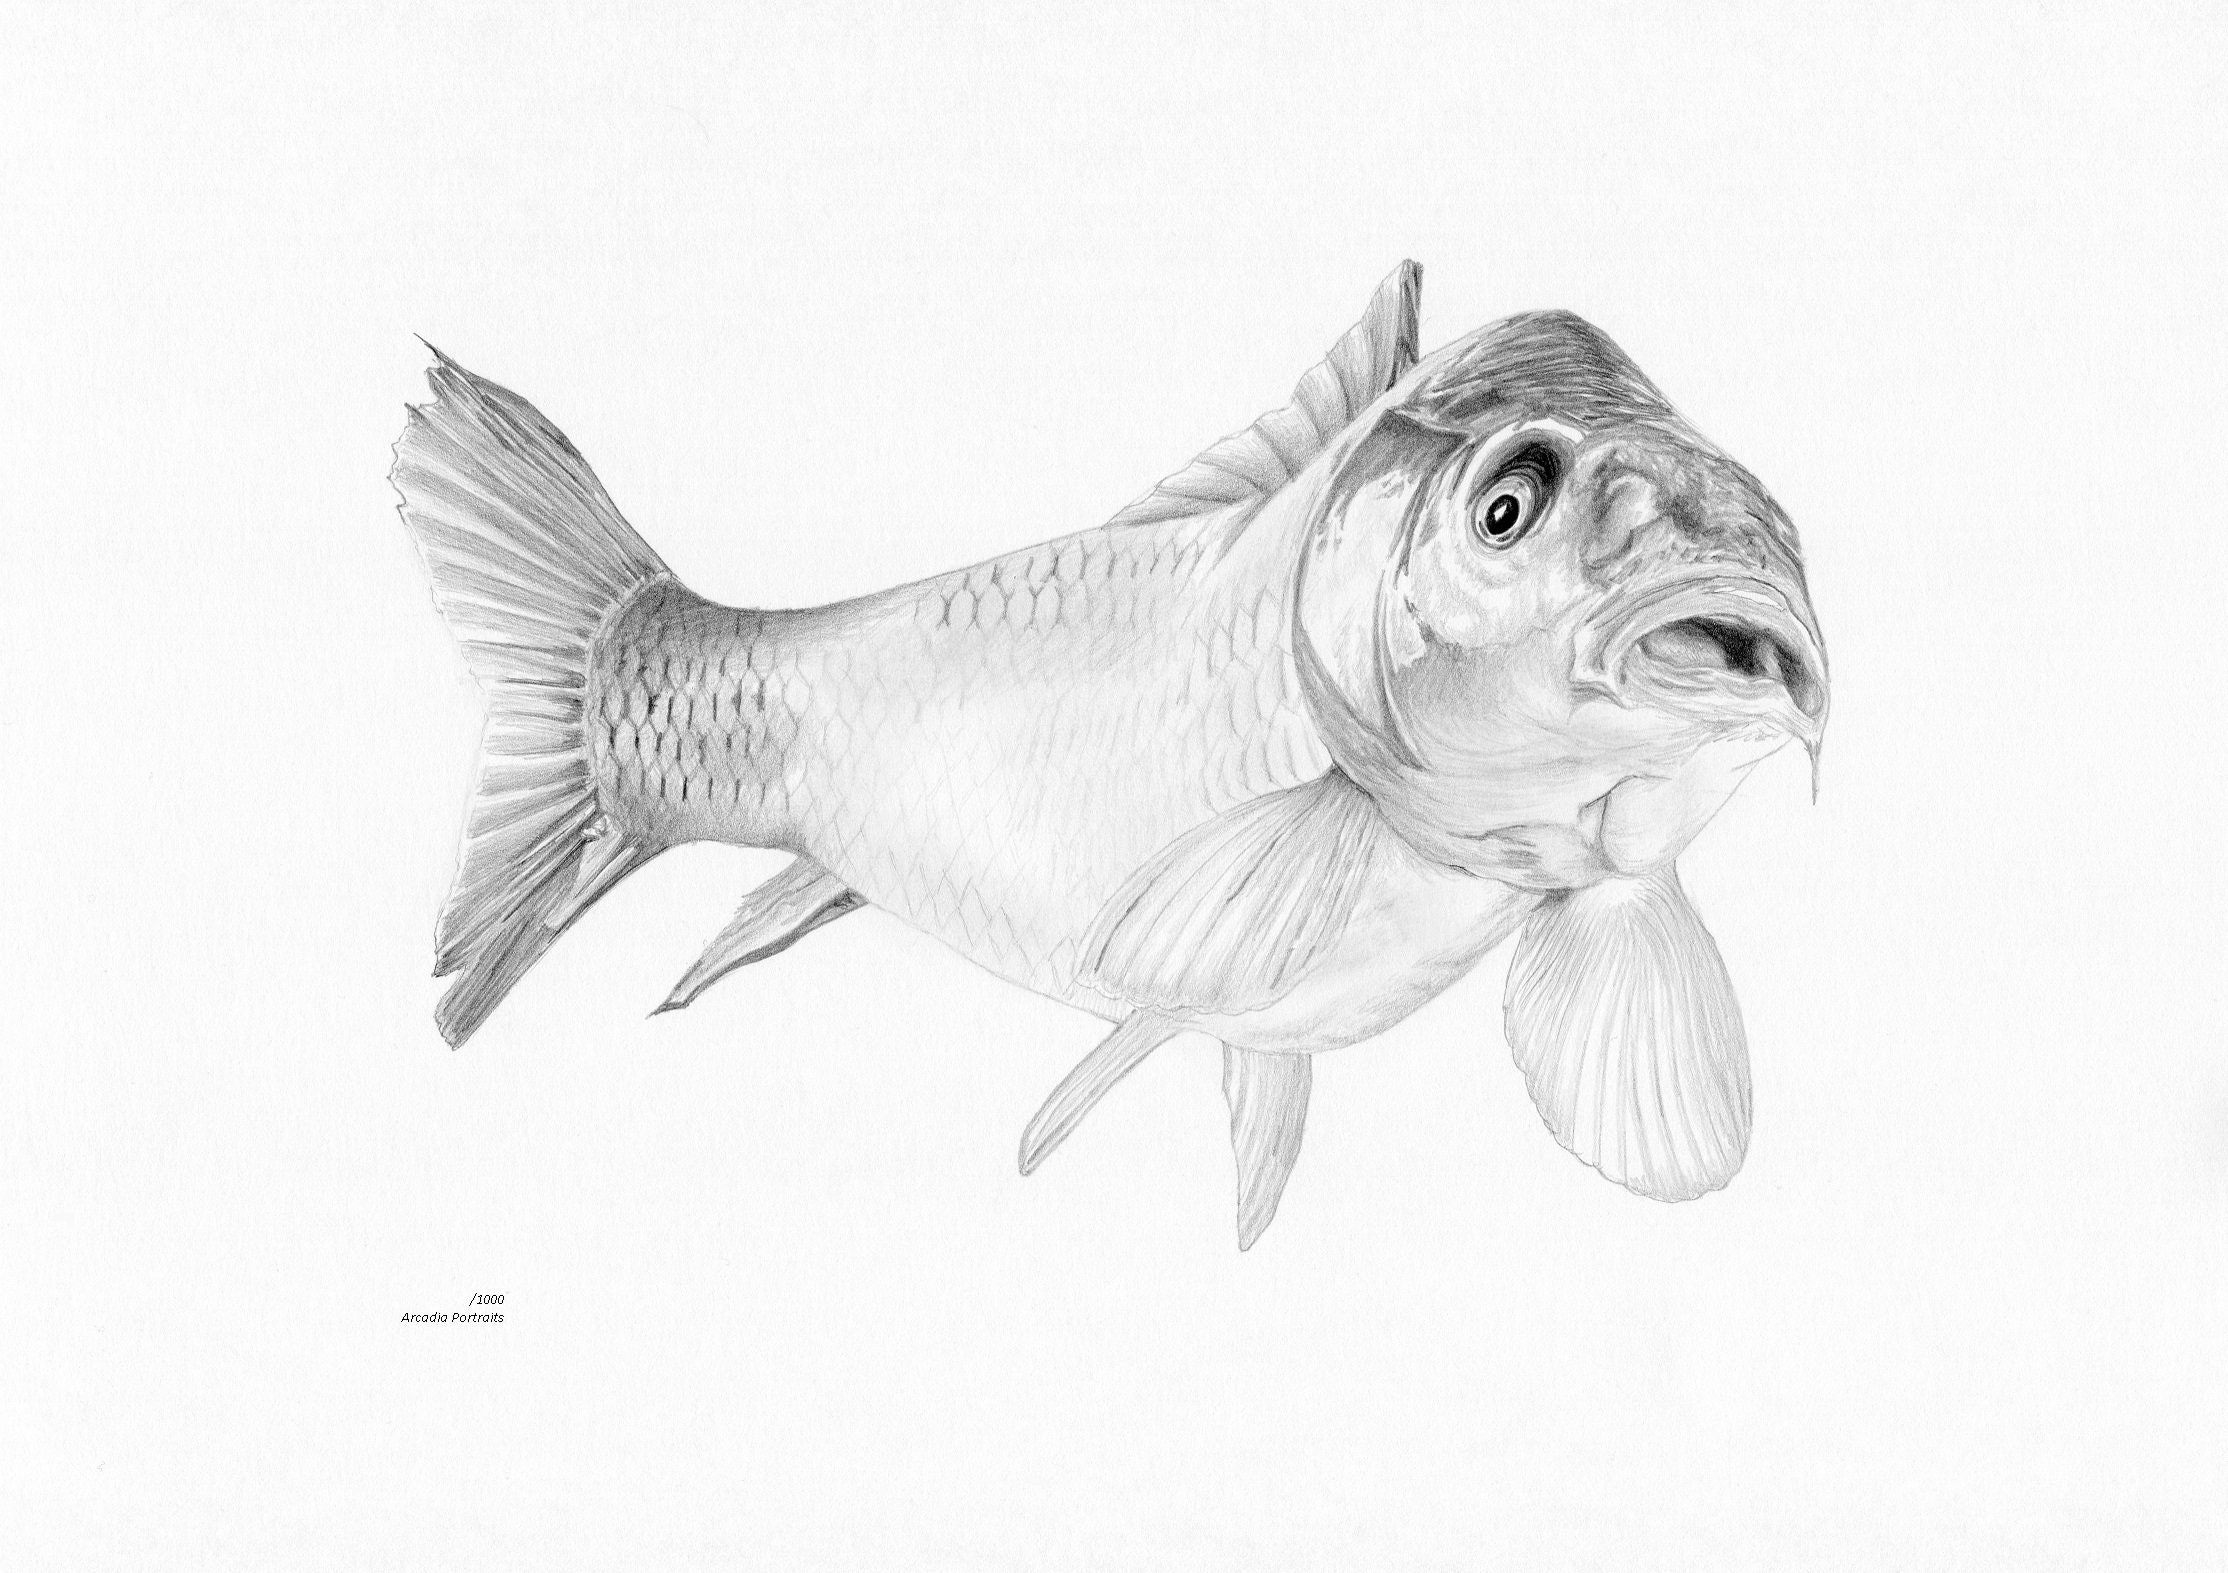 Carp fish fishing limited edition art pencil drawing print signed by uk artist